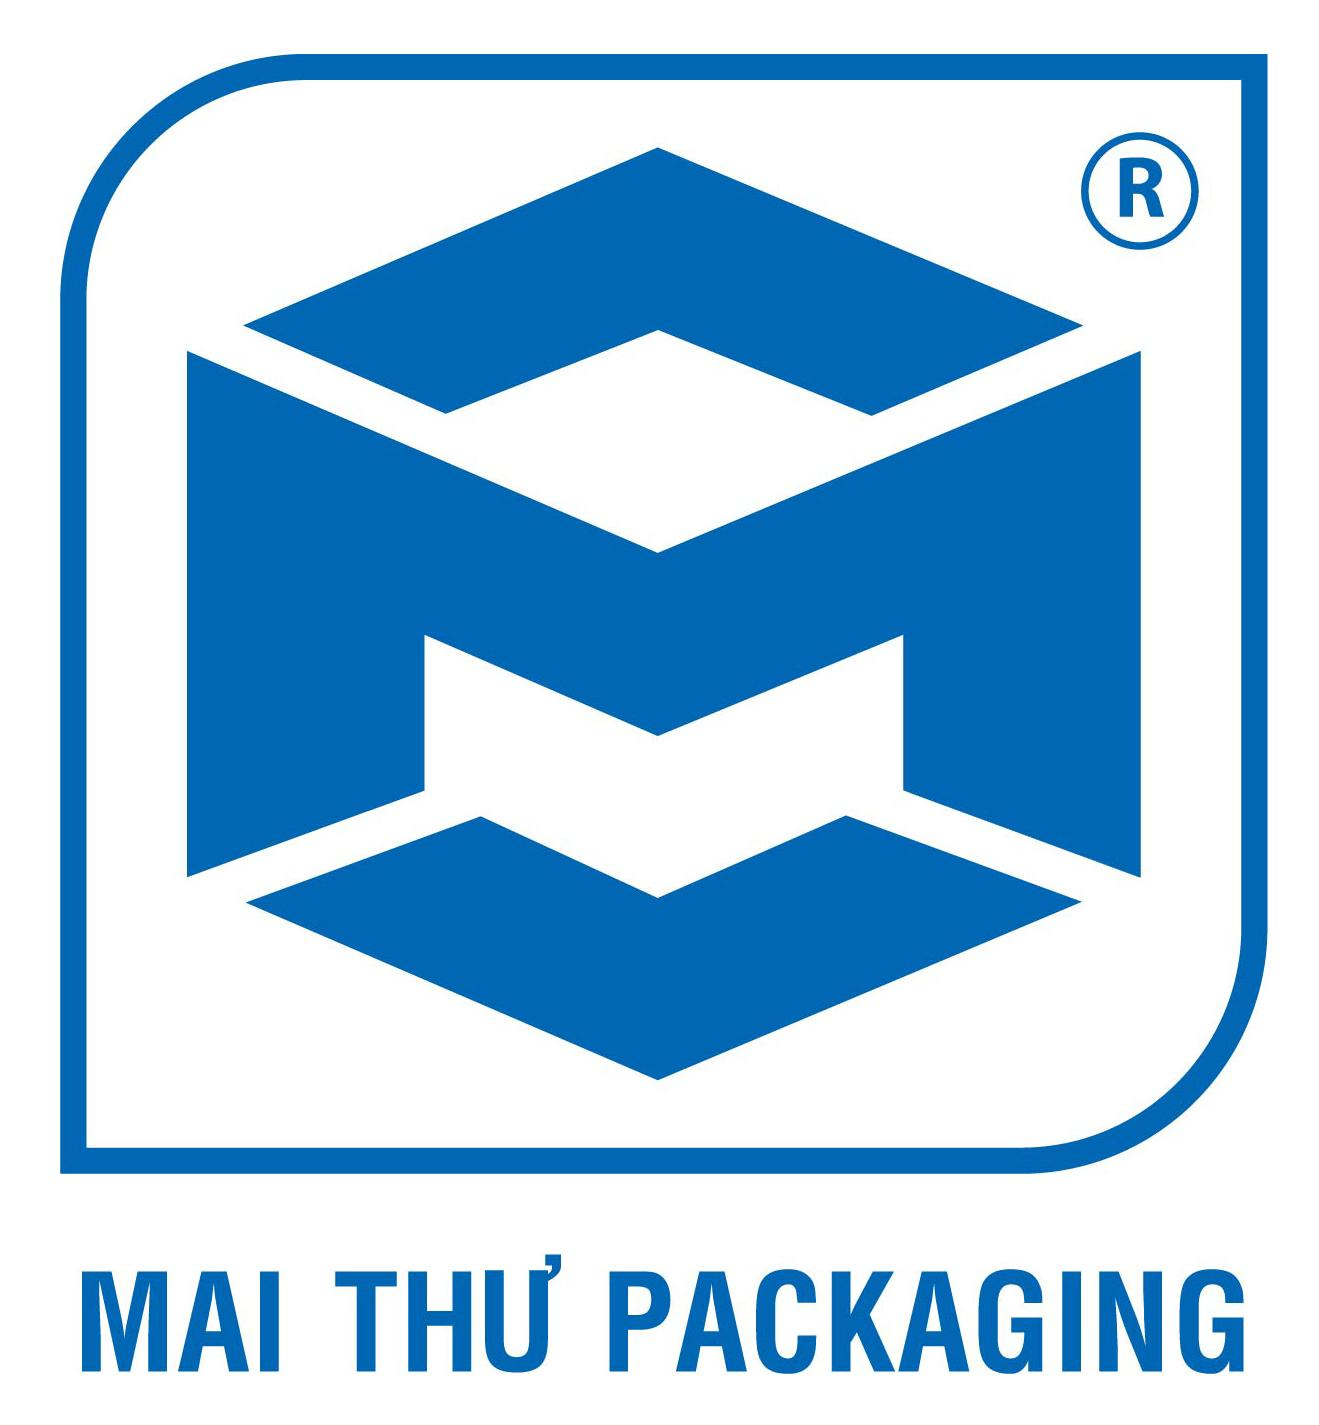 MAI THU PACKING TRADING AND PRODUCING COMPANY LIMITED